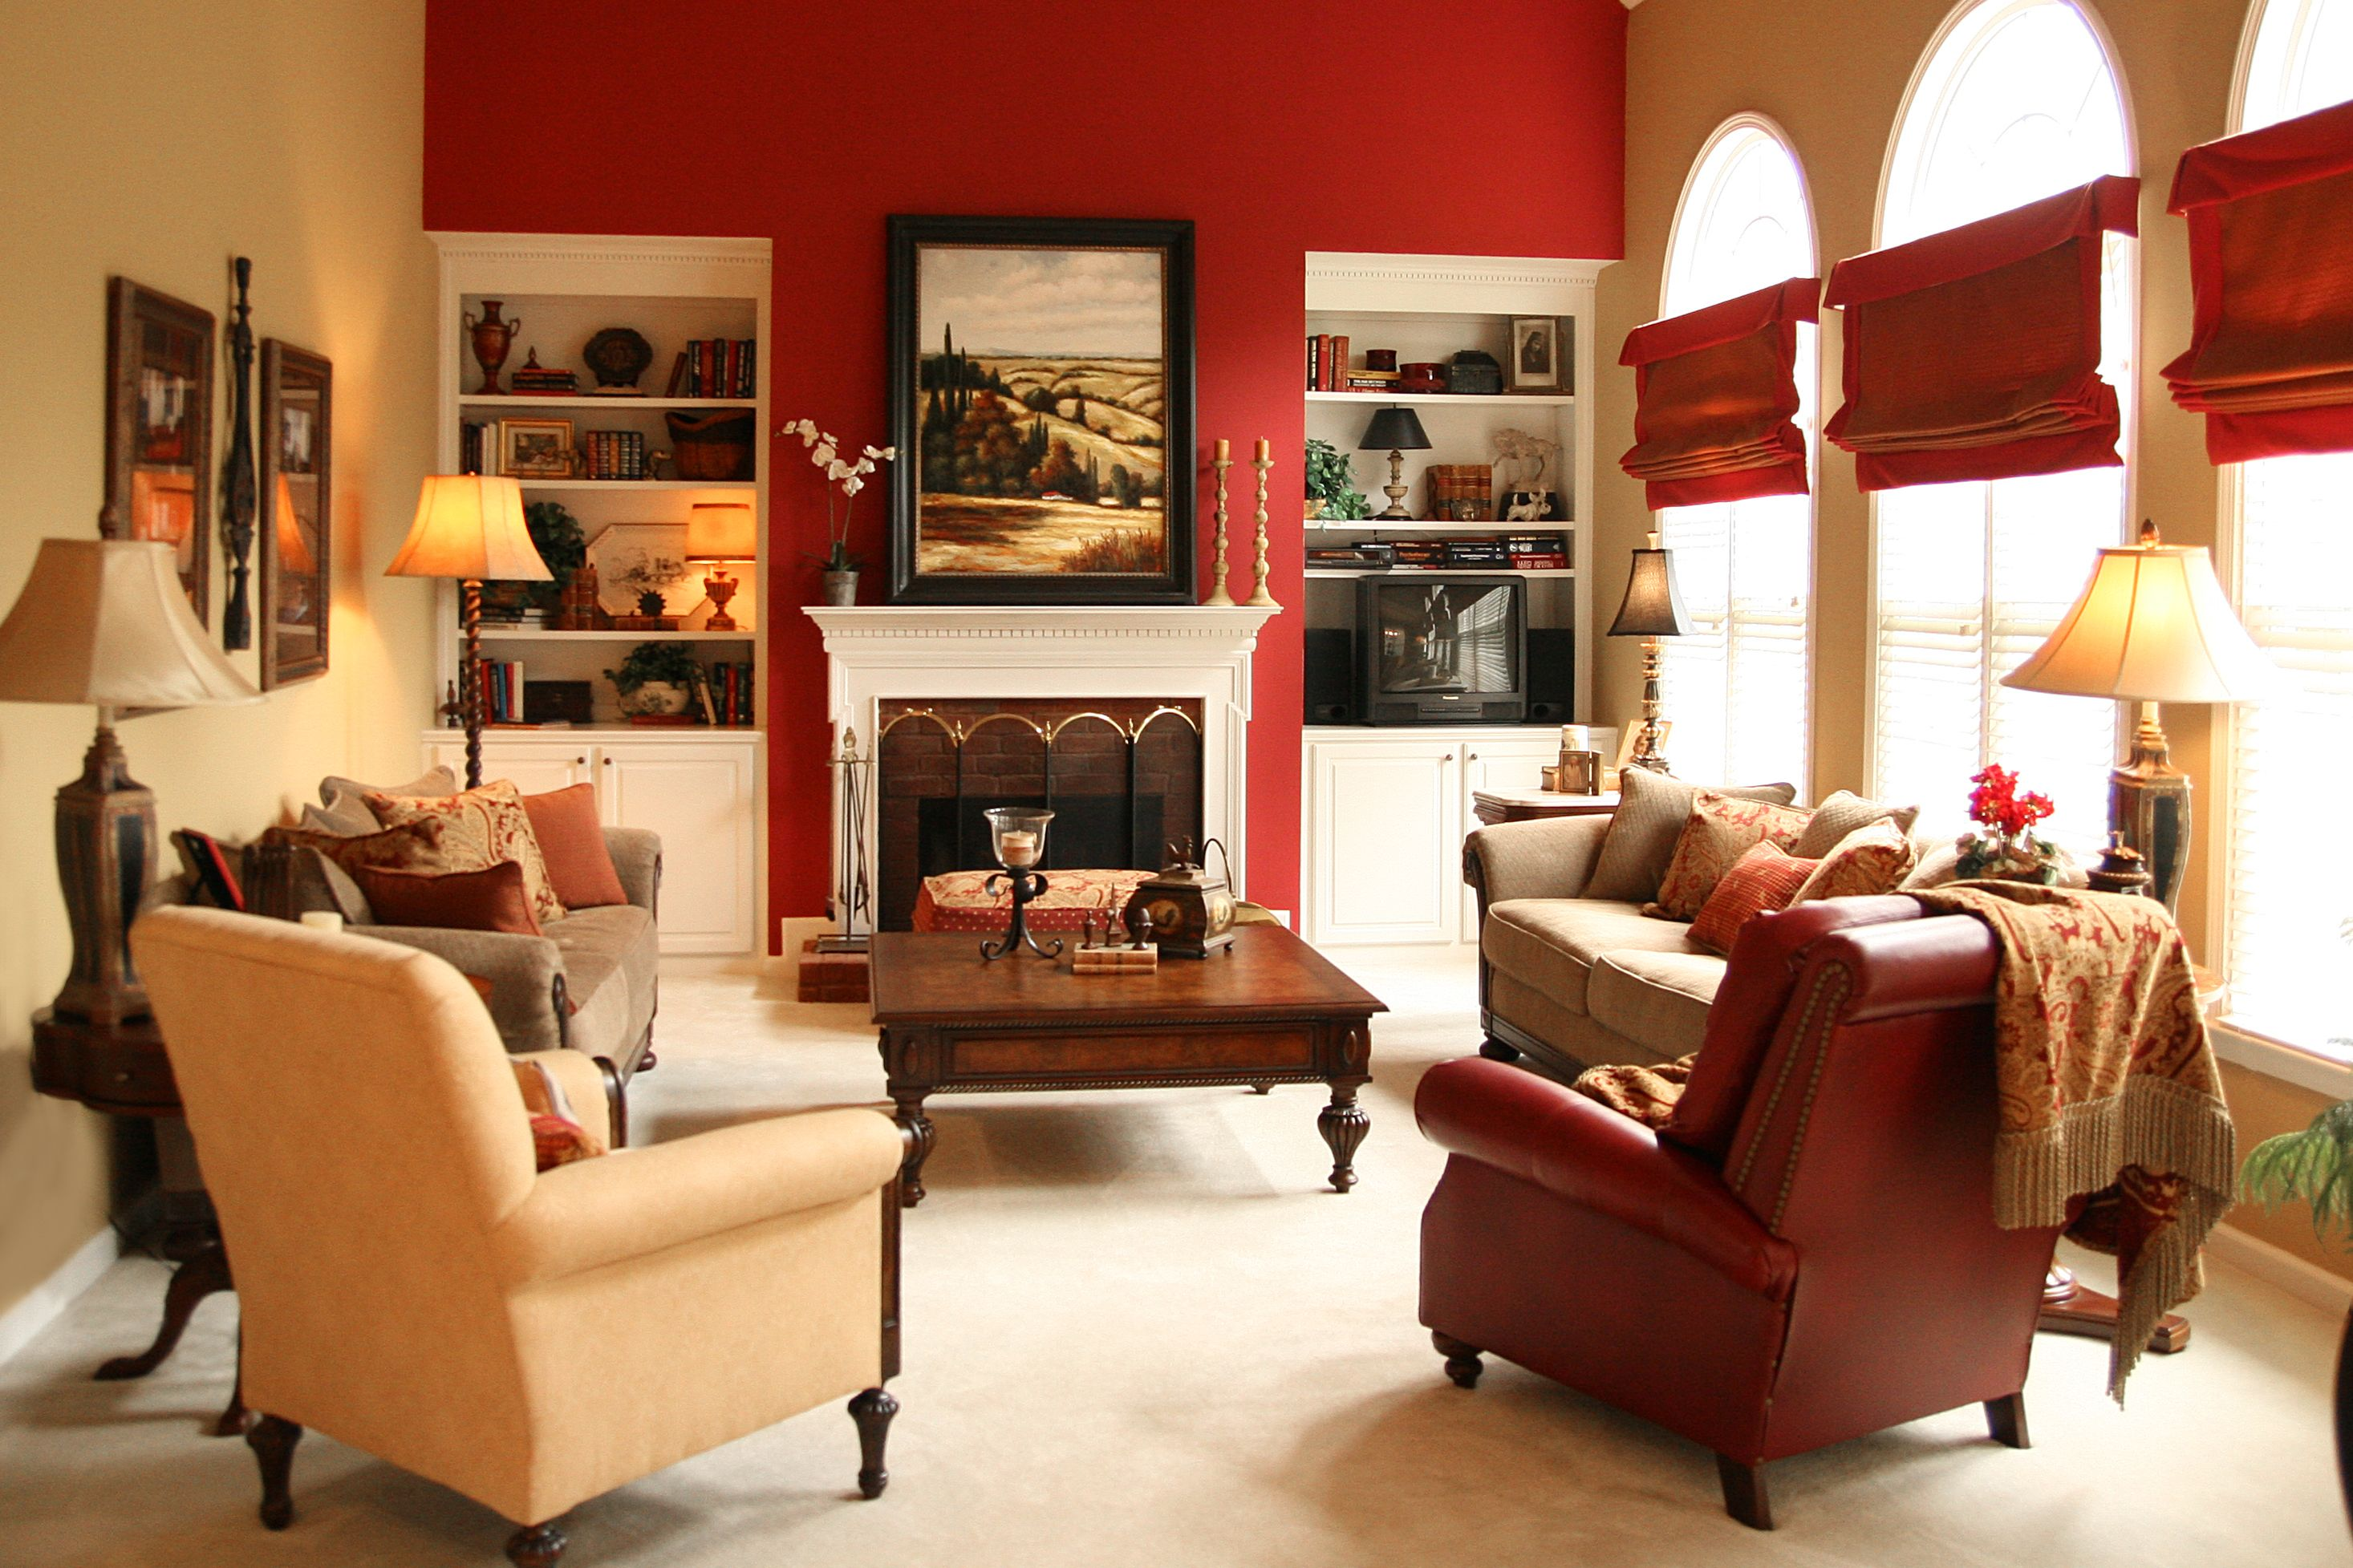 Pin By Marla Graves On Color Inspiration Living Room Red Living